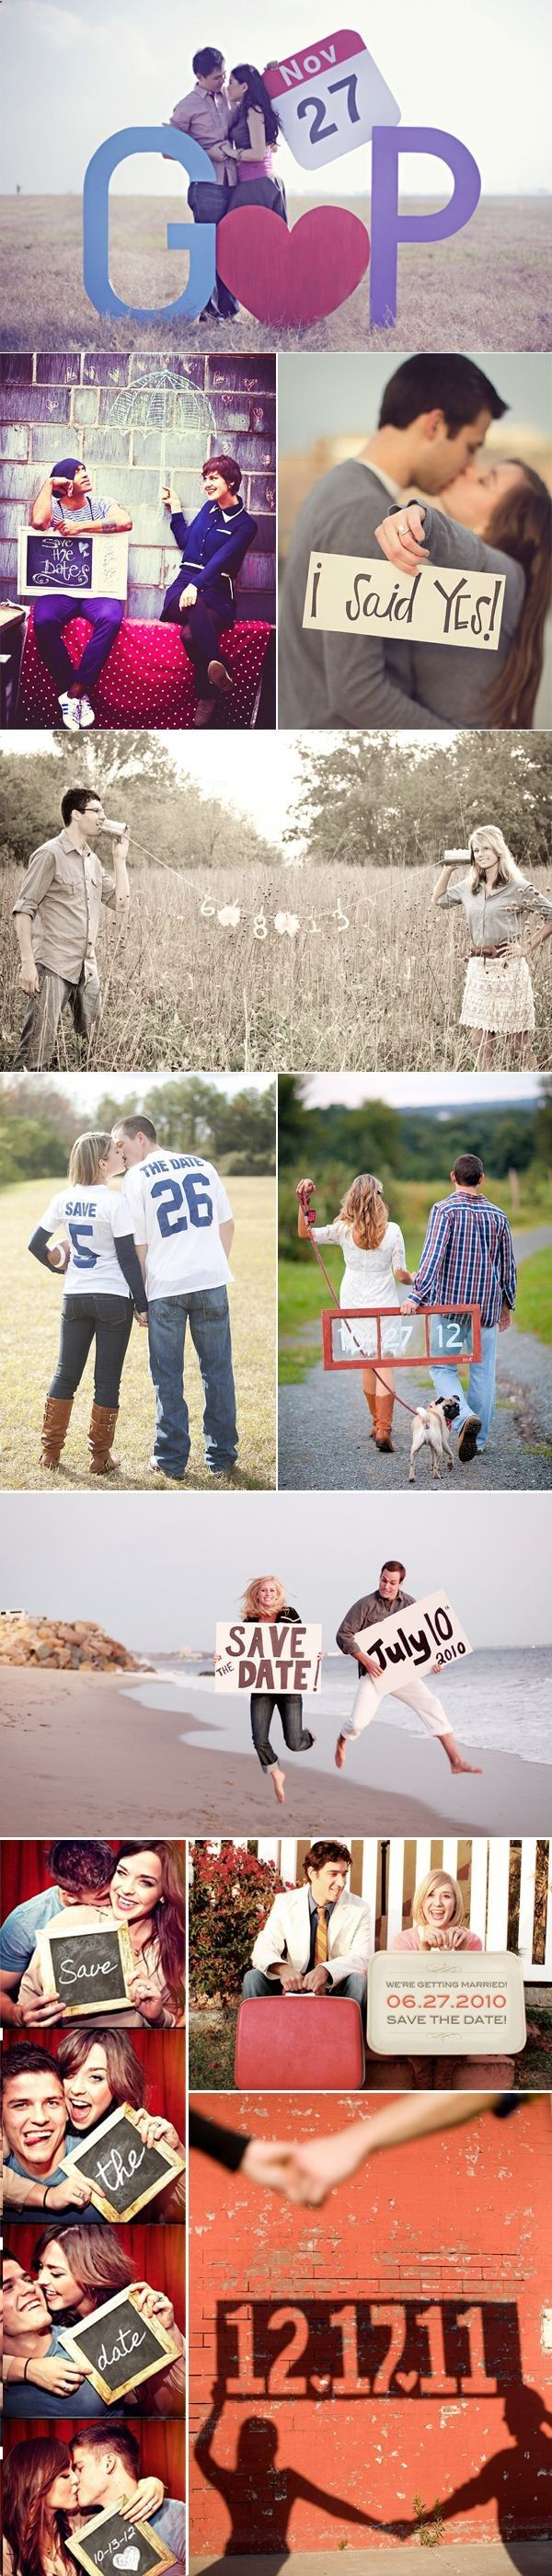 48 Save-the-Date Ideas. @ Wedding-Day-Bliss